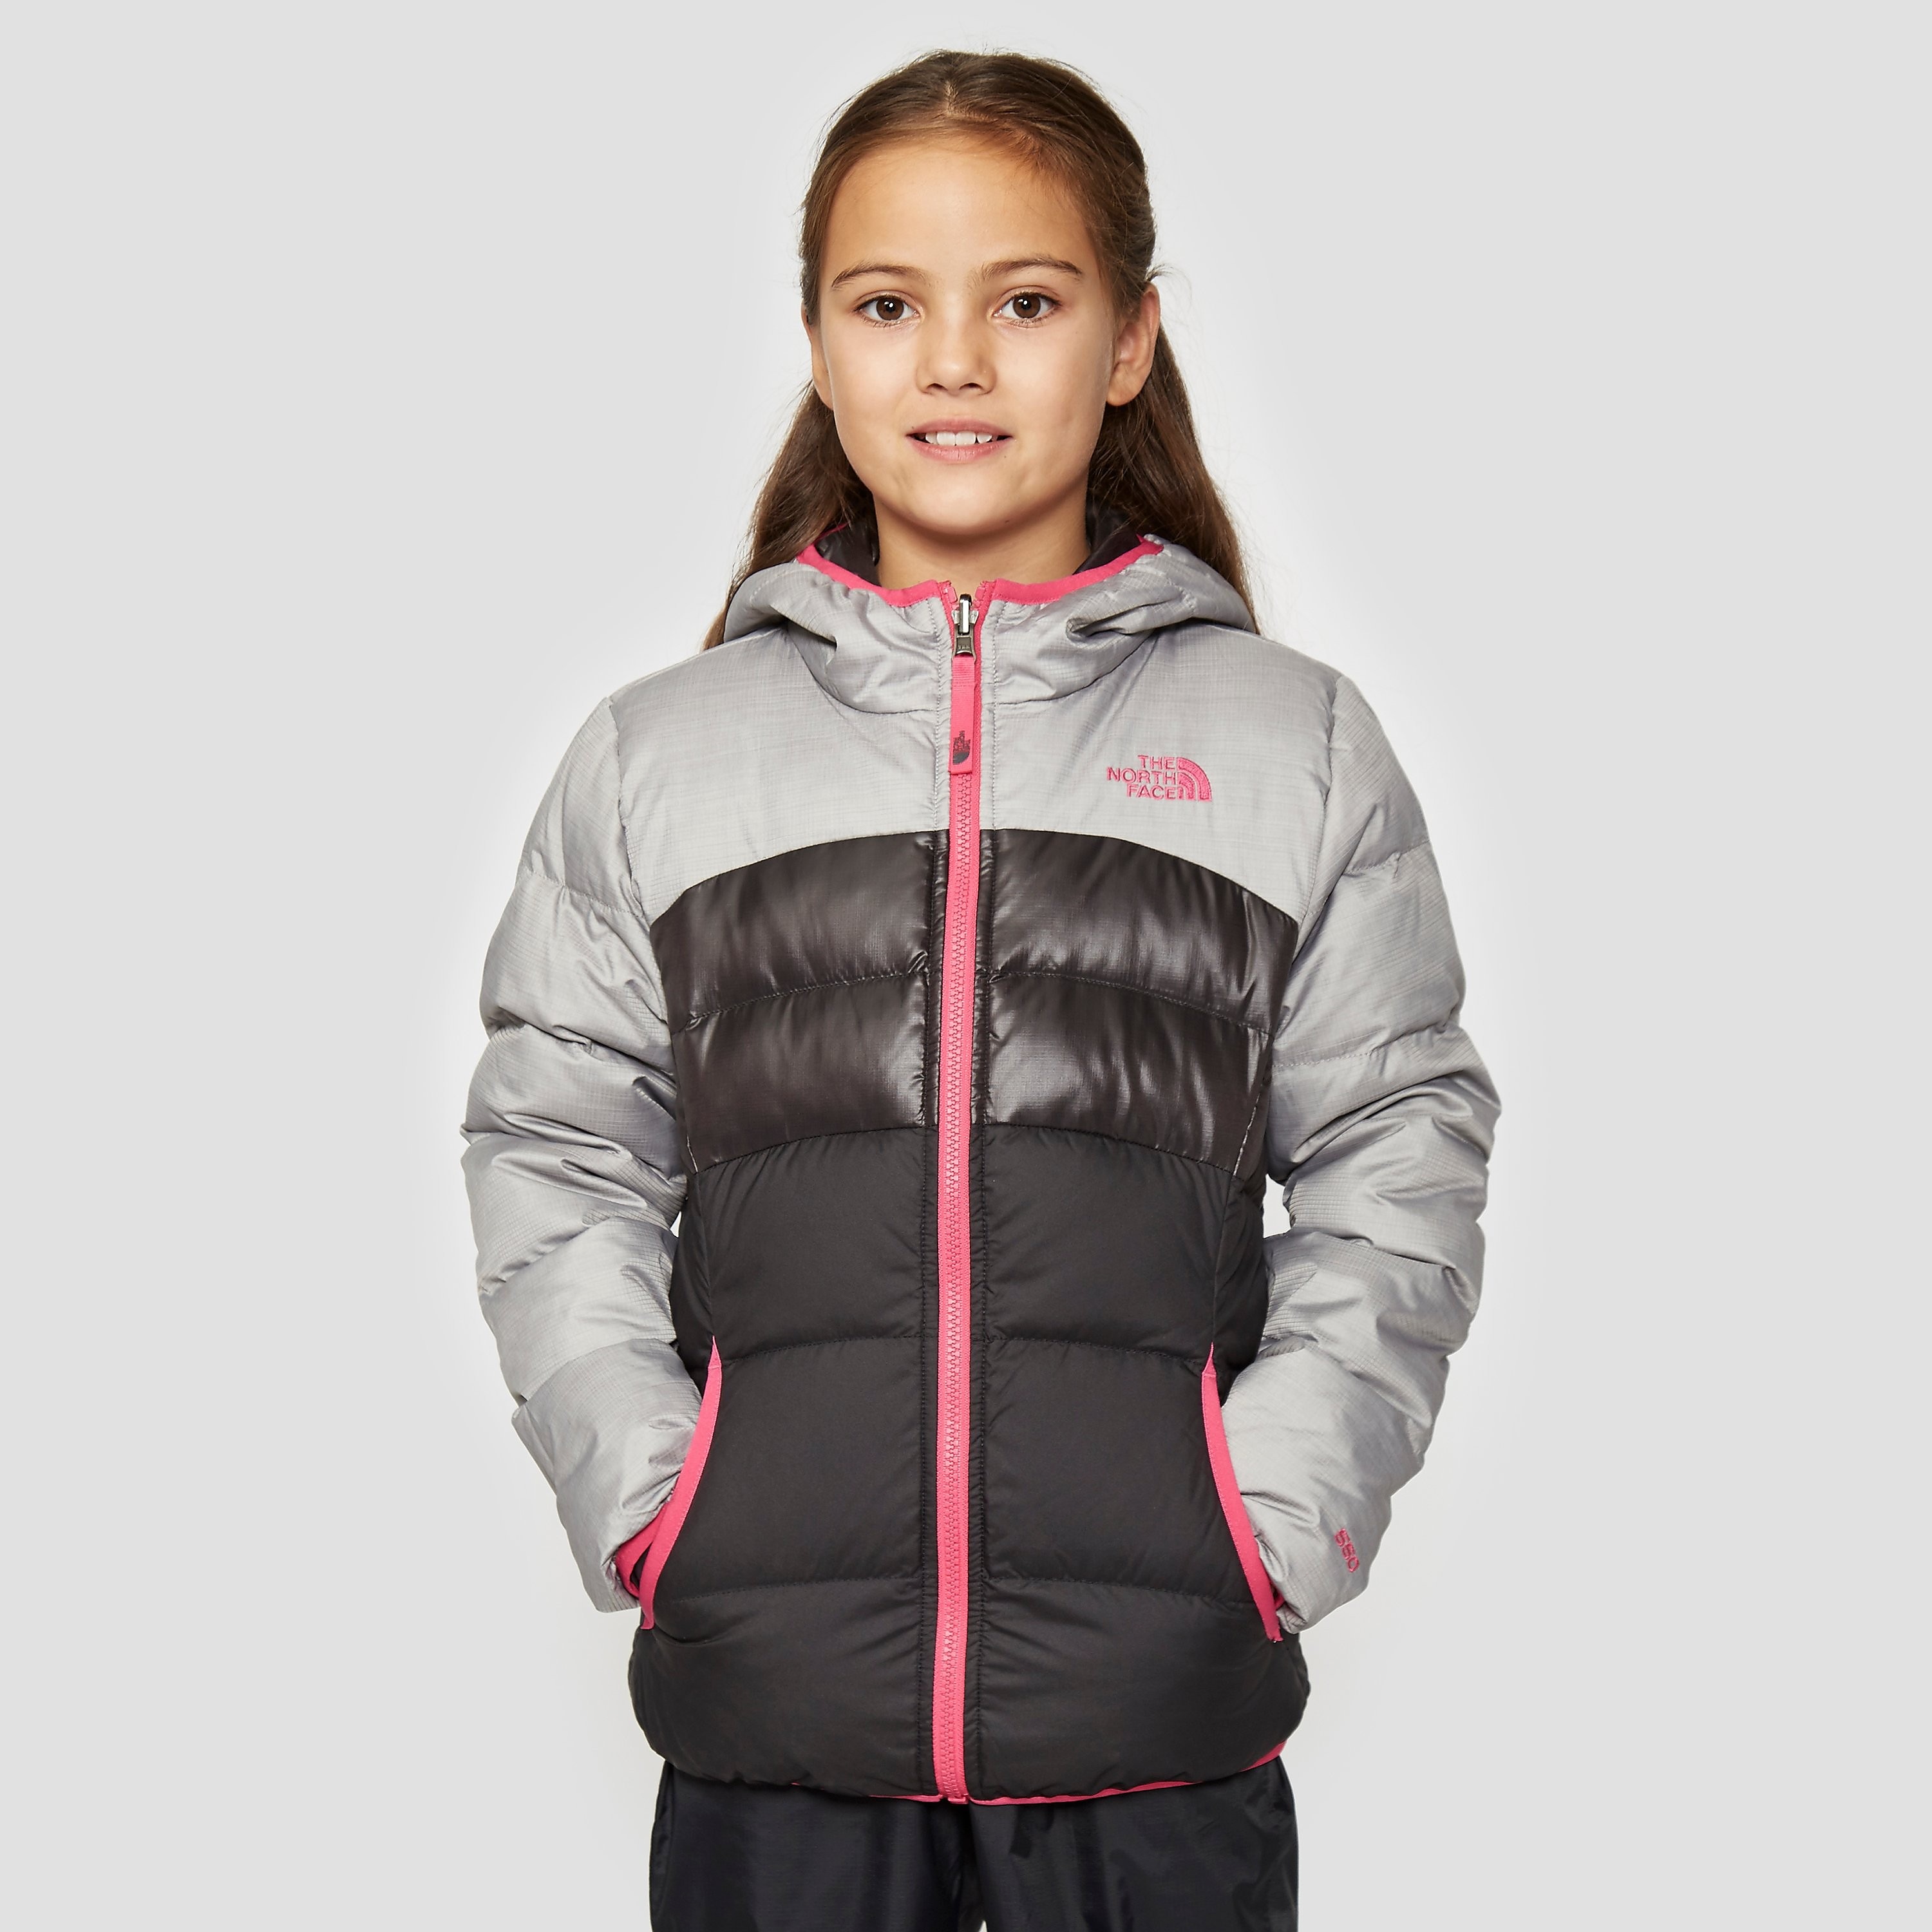 The north face Girl's Reversible Jacket